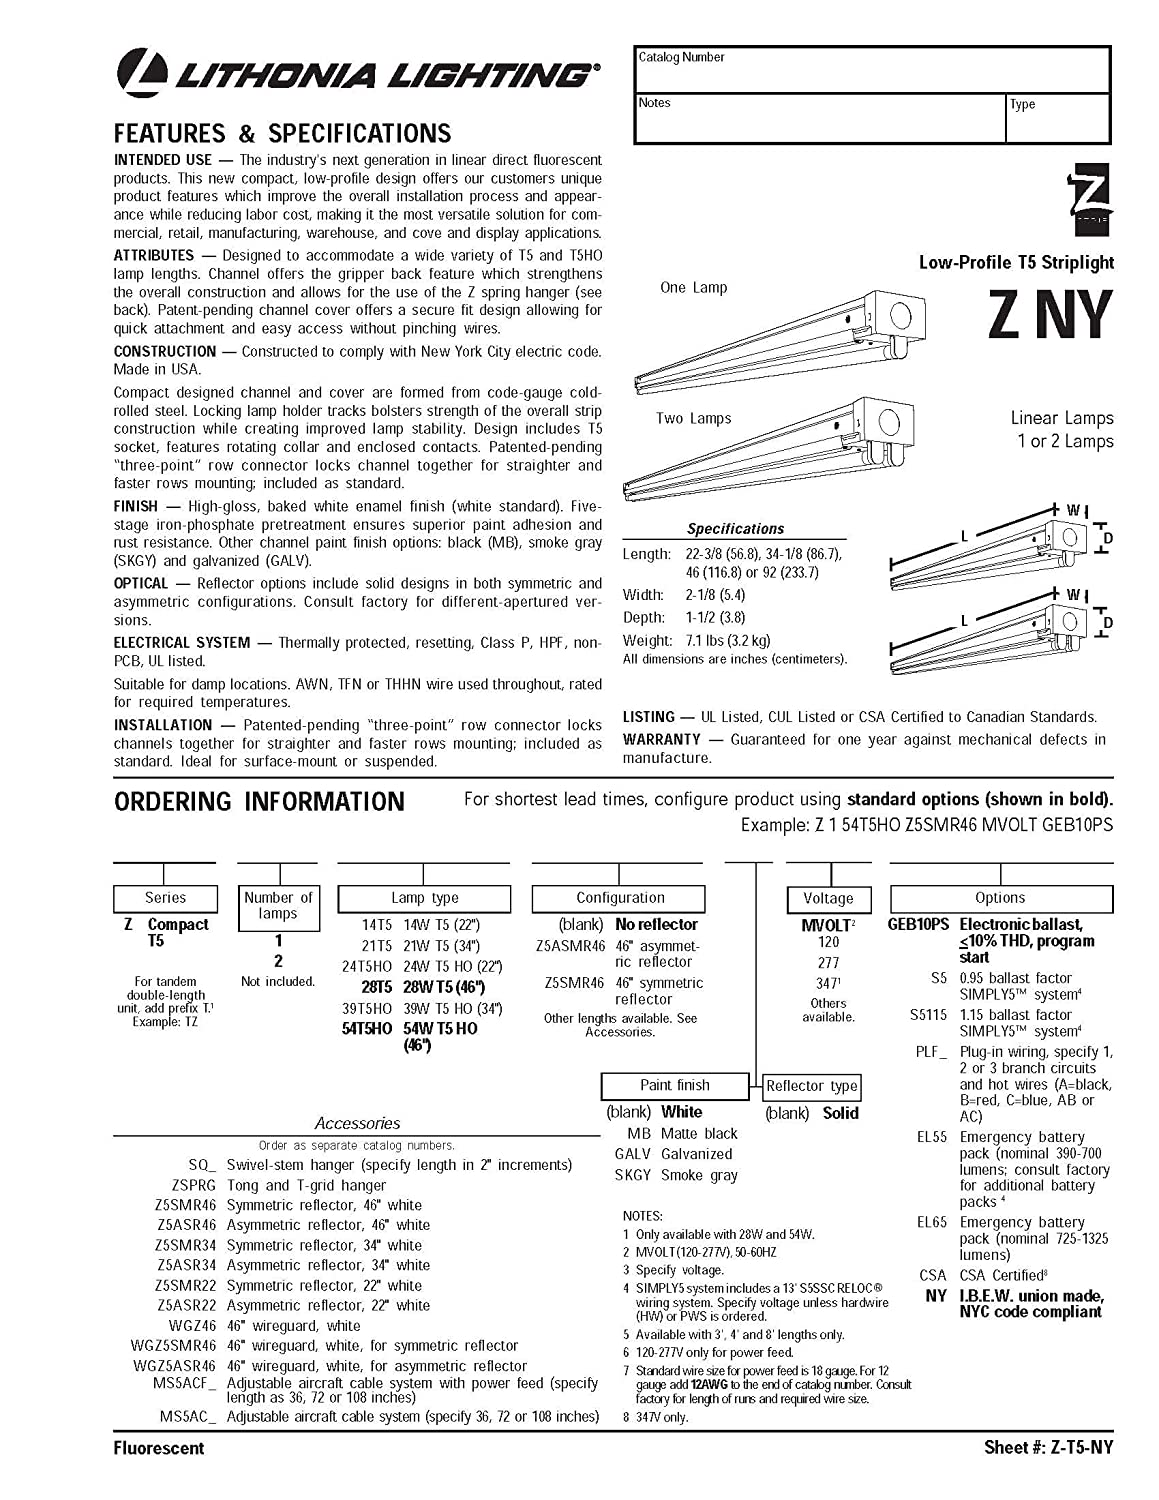 Amazon.com: Lithonia Lighting Z 1 28T5 MVOLT GEB10PS 1-Light T5 ... for T5 Tube Light Specification  45ifm